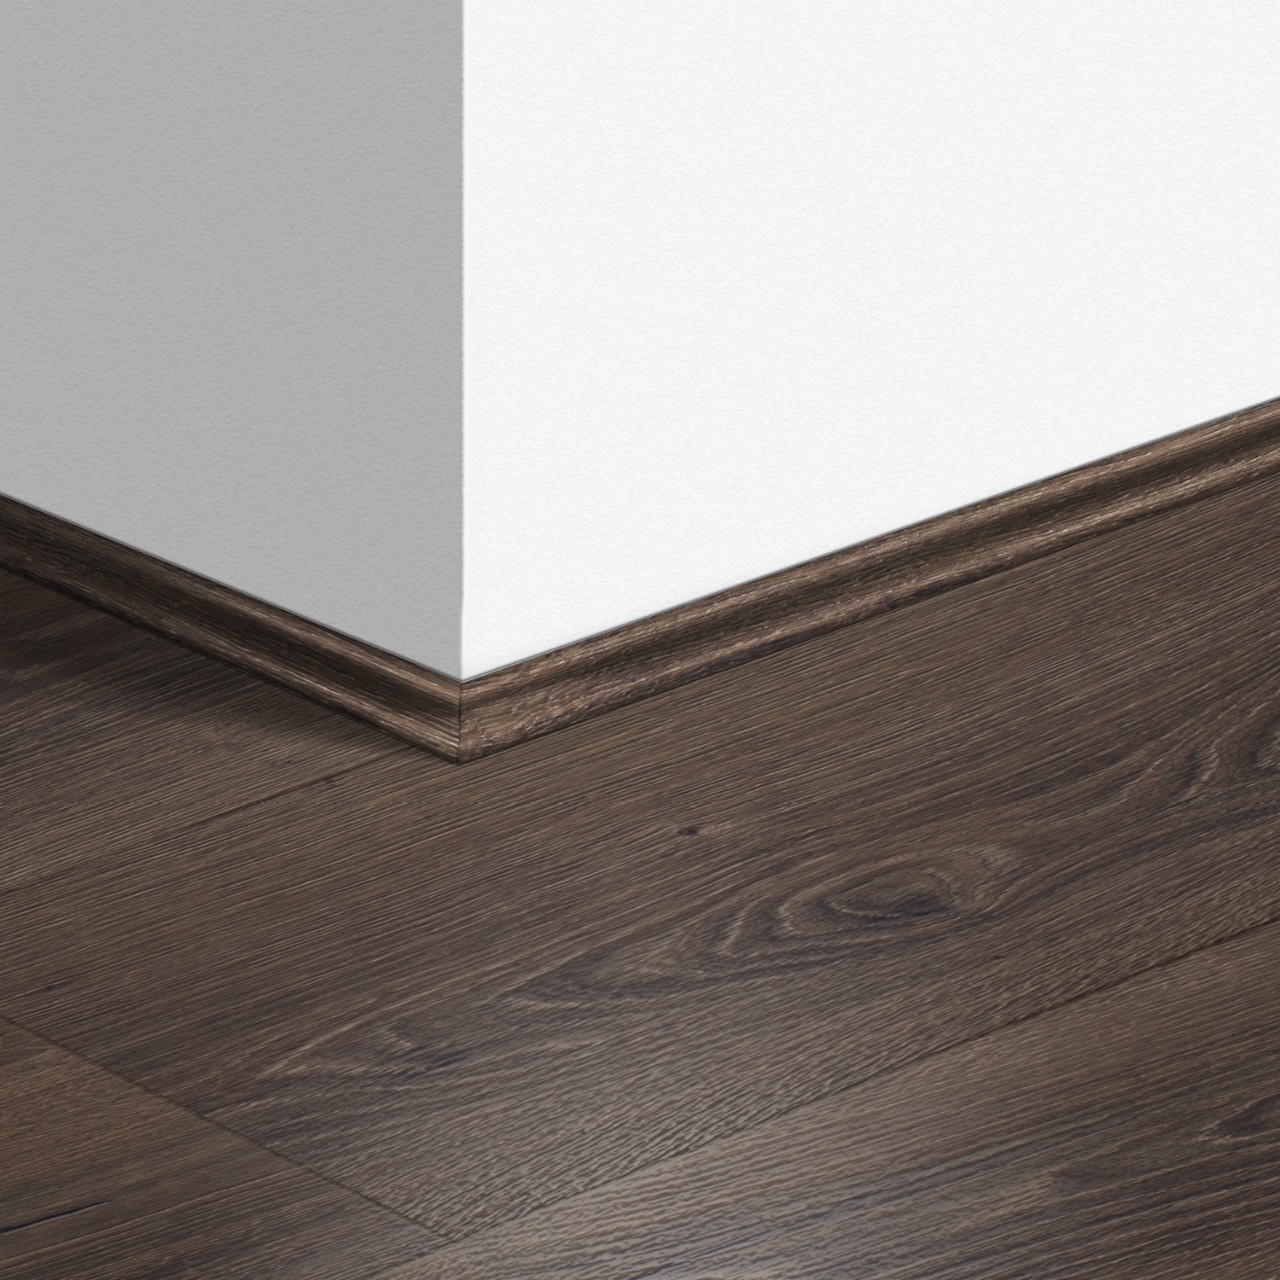 QSSCOT Laminate Accessories Desert Oak Brushed Dark Brown QSSCOT03553